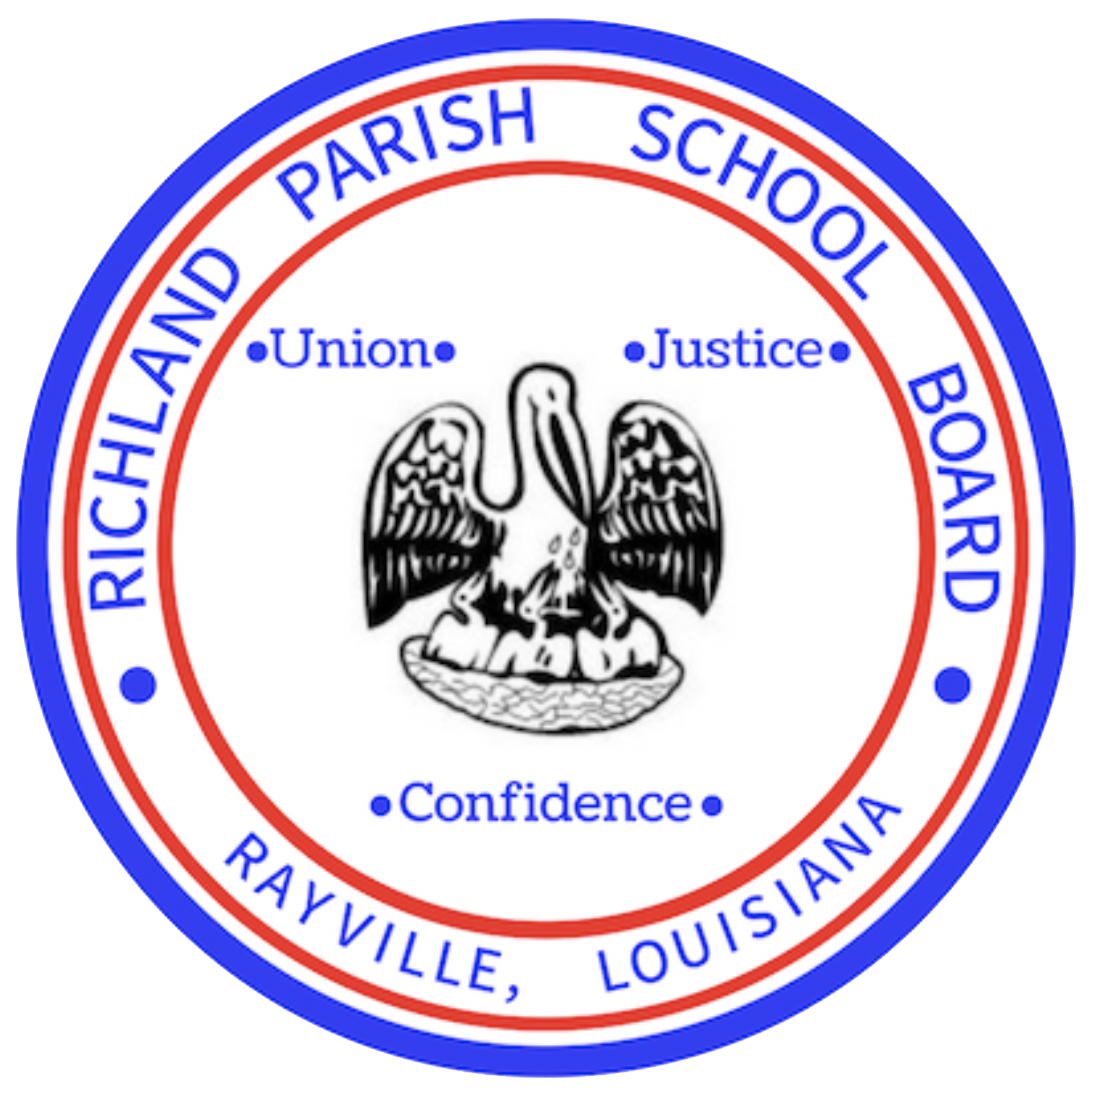 Richland Parish School Board